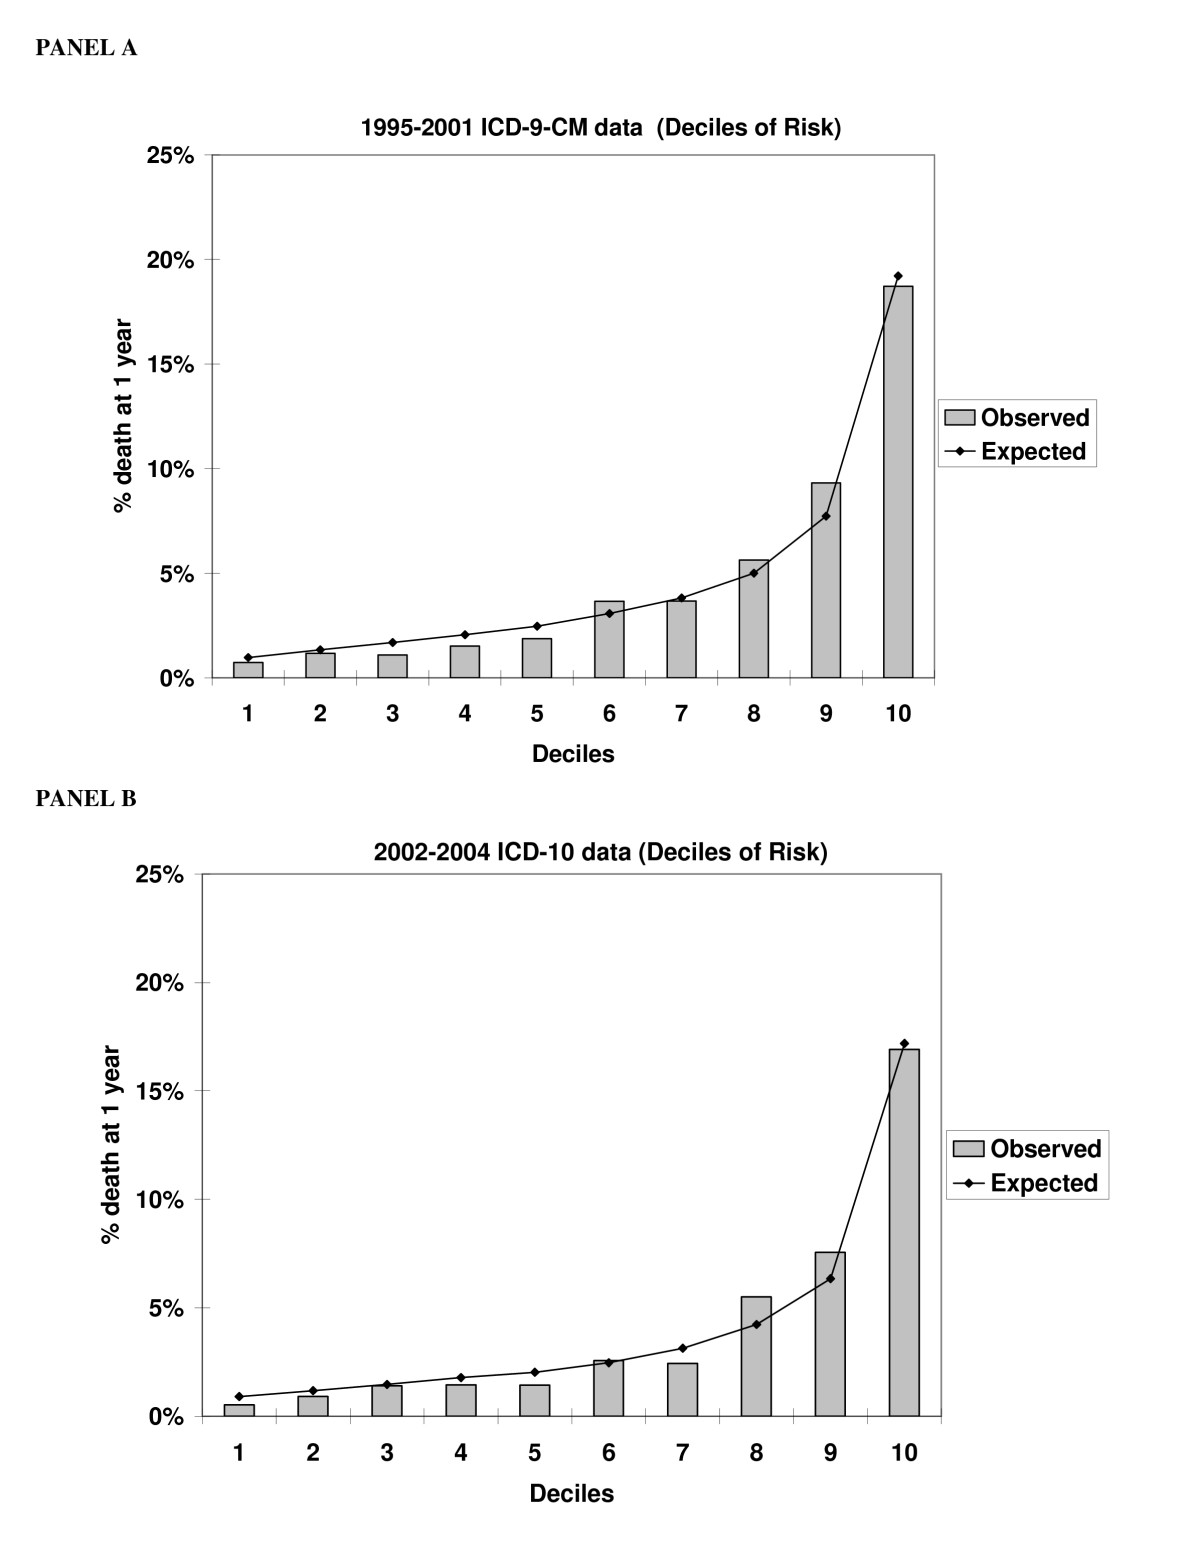 http://static-content.springer.com/image/art%3A10.1186%2F1471-2288-8-1/MediaObjects/12874_2007_Article_237_Fig2_HTML.jpg